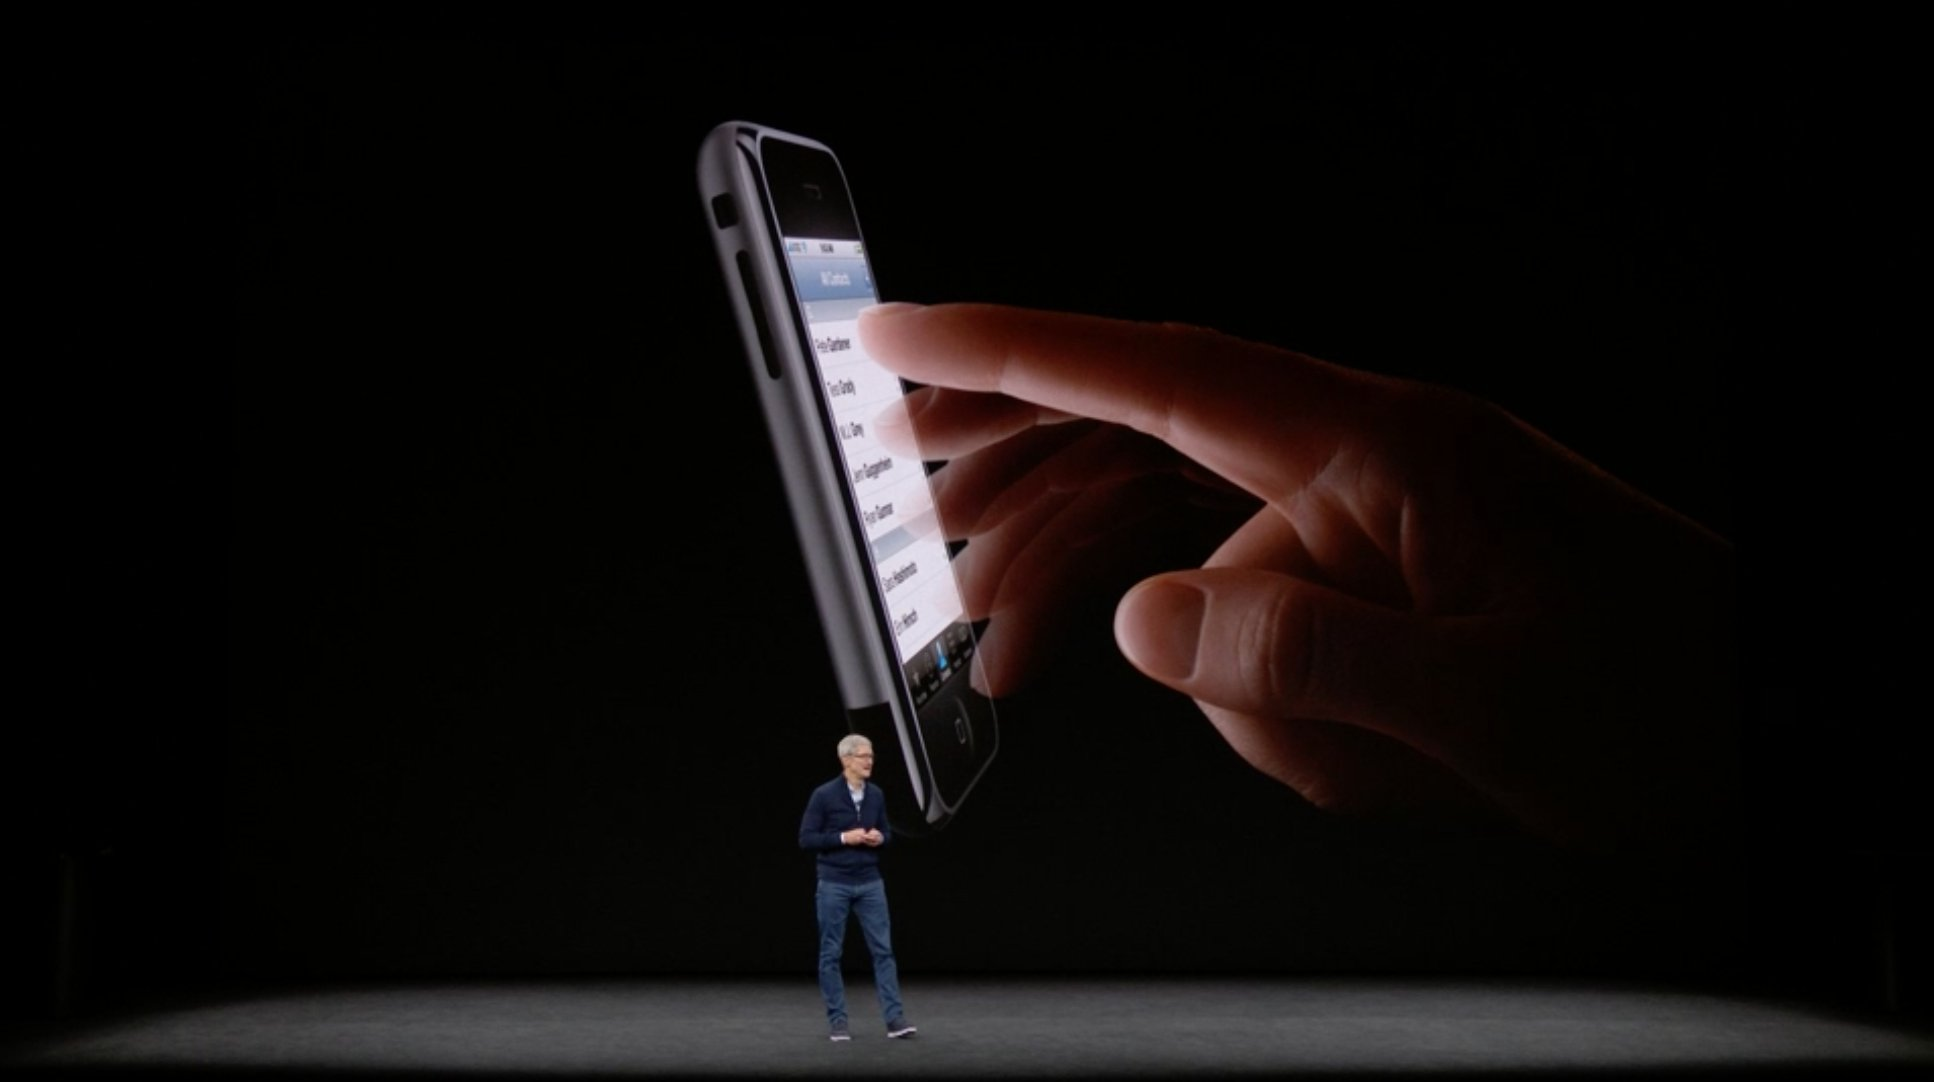 It's iPhone time: https://t.co/vpJm79i84W #AppleEvent. https://t.co/hsAWBOncI7